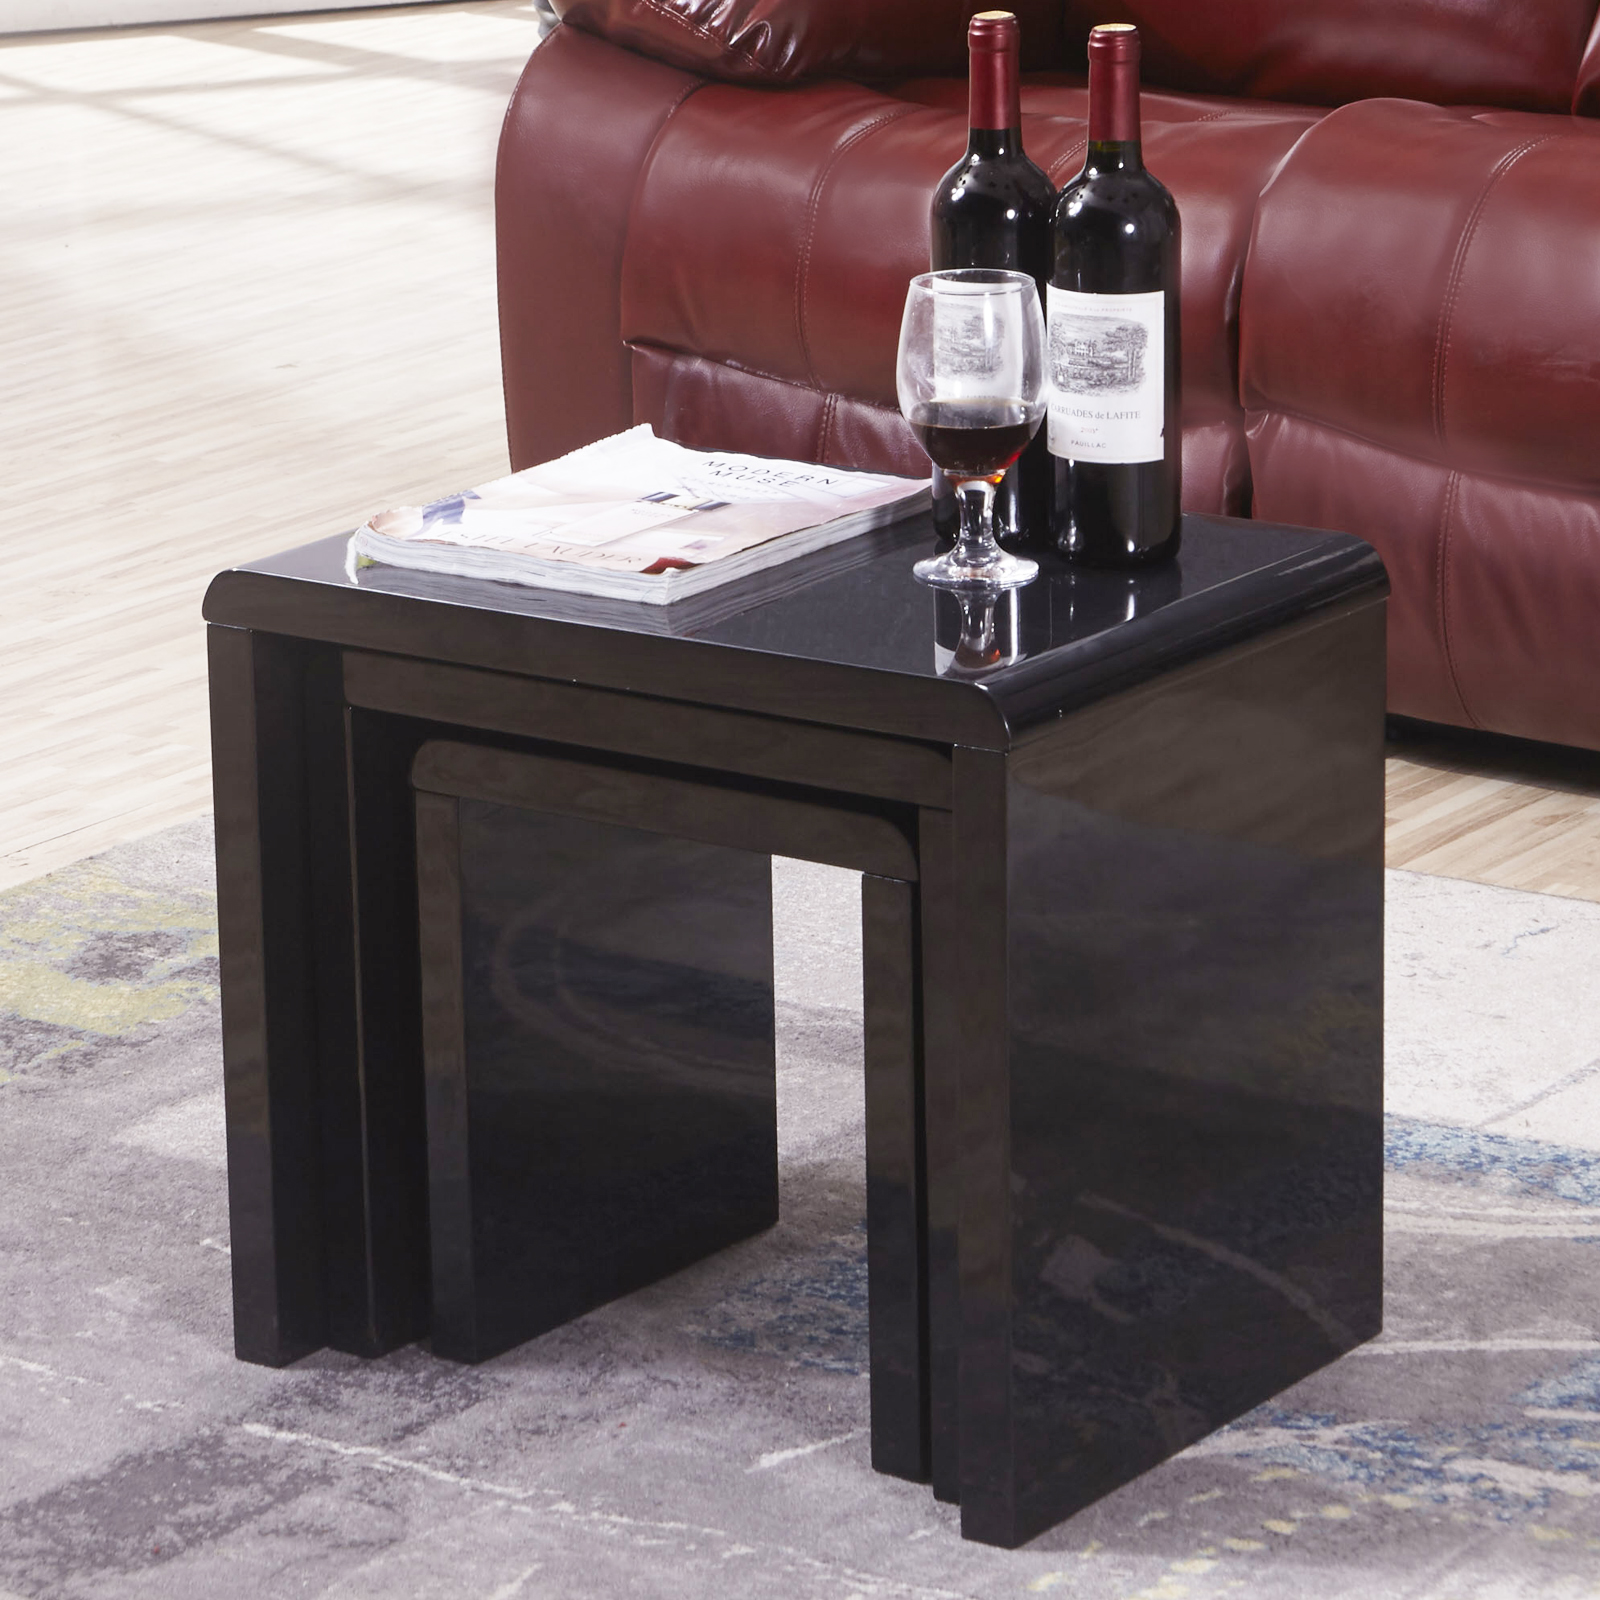 Black Coffee Table Nest: New Modern Design High Gloss Black Nest Of 3 Coffee Table